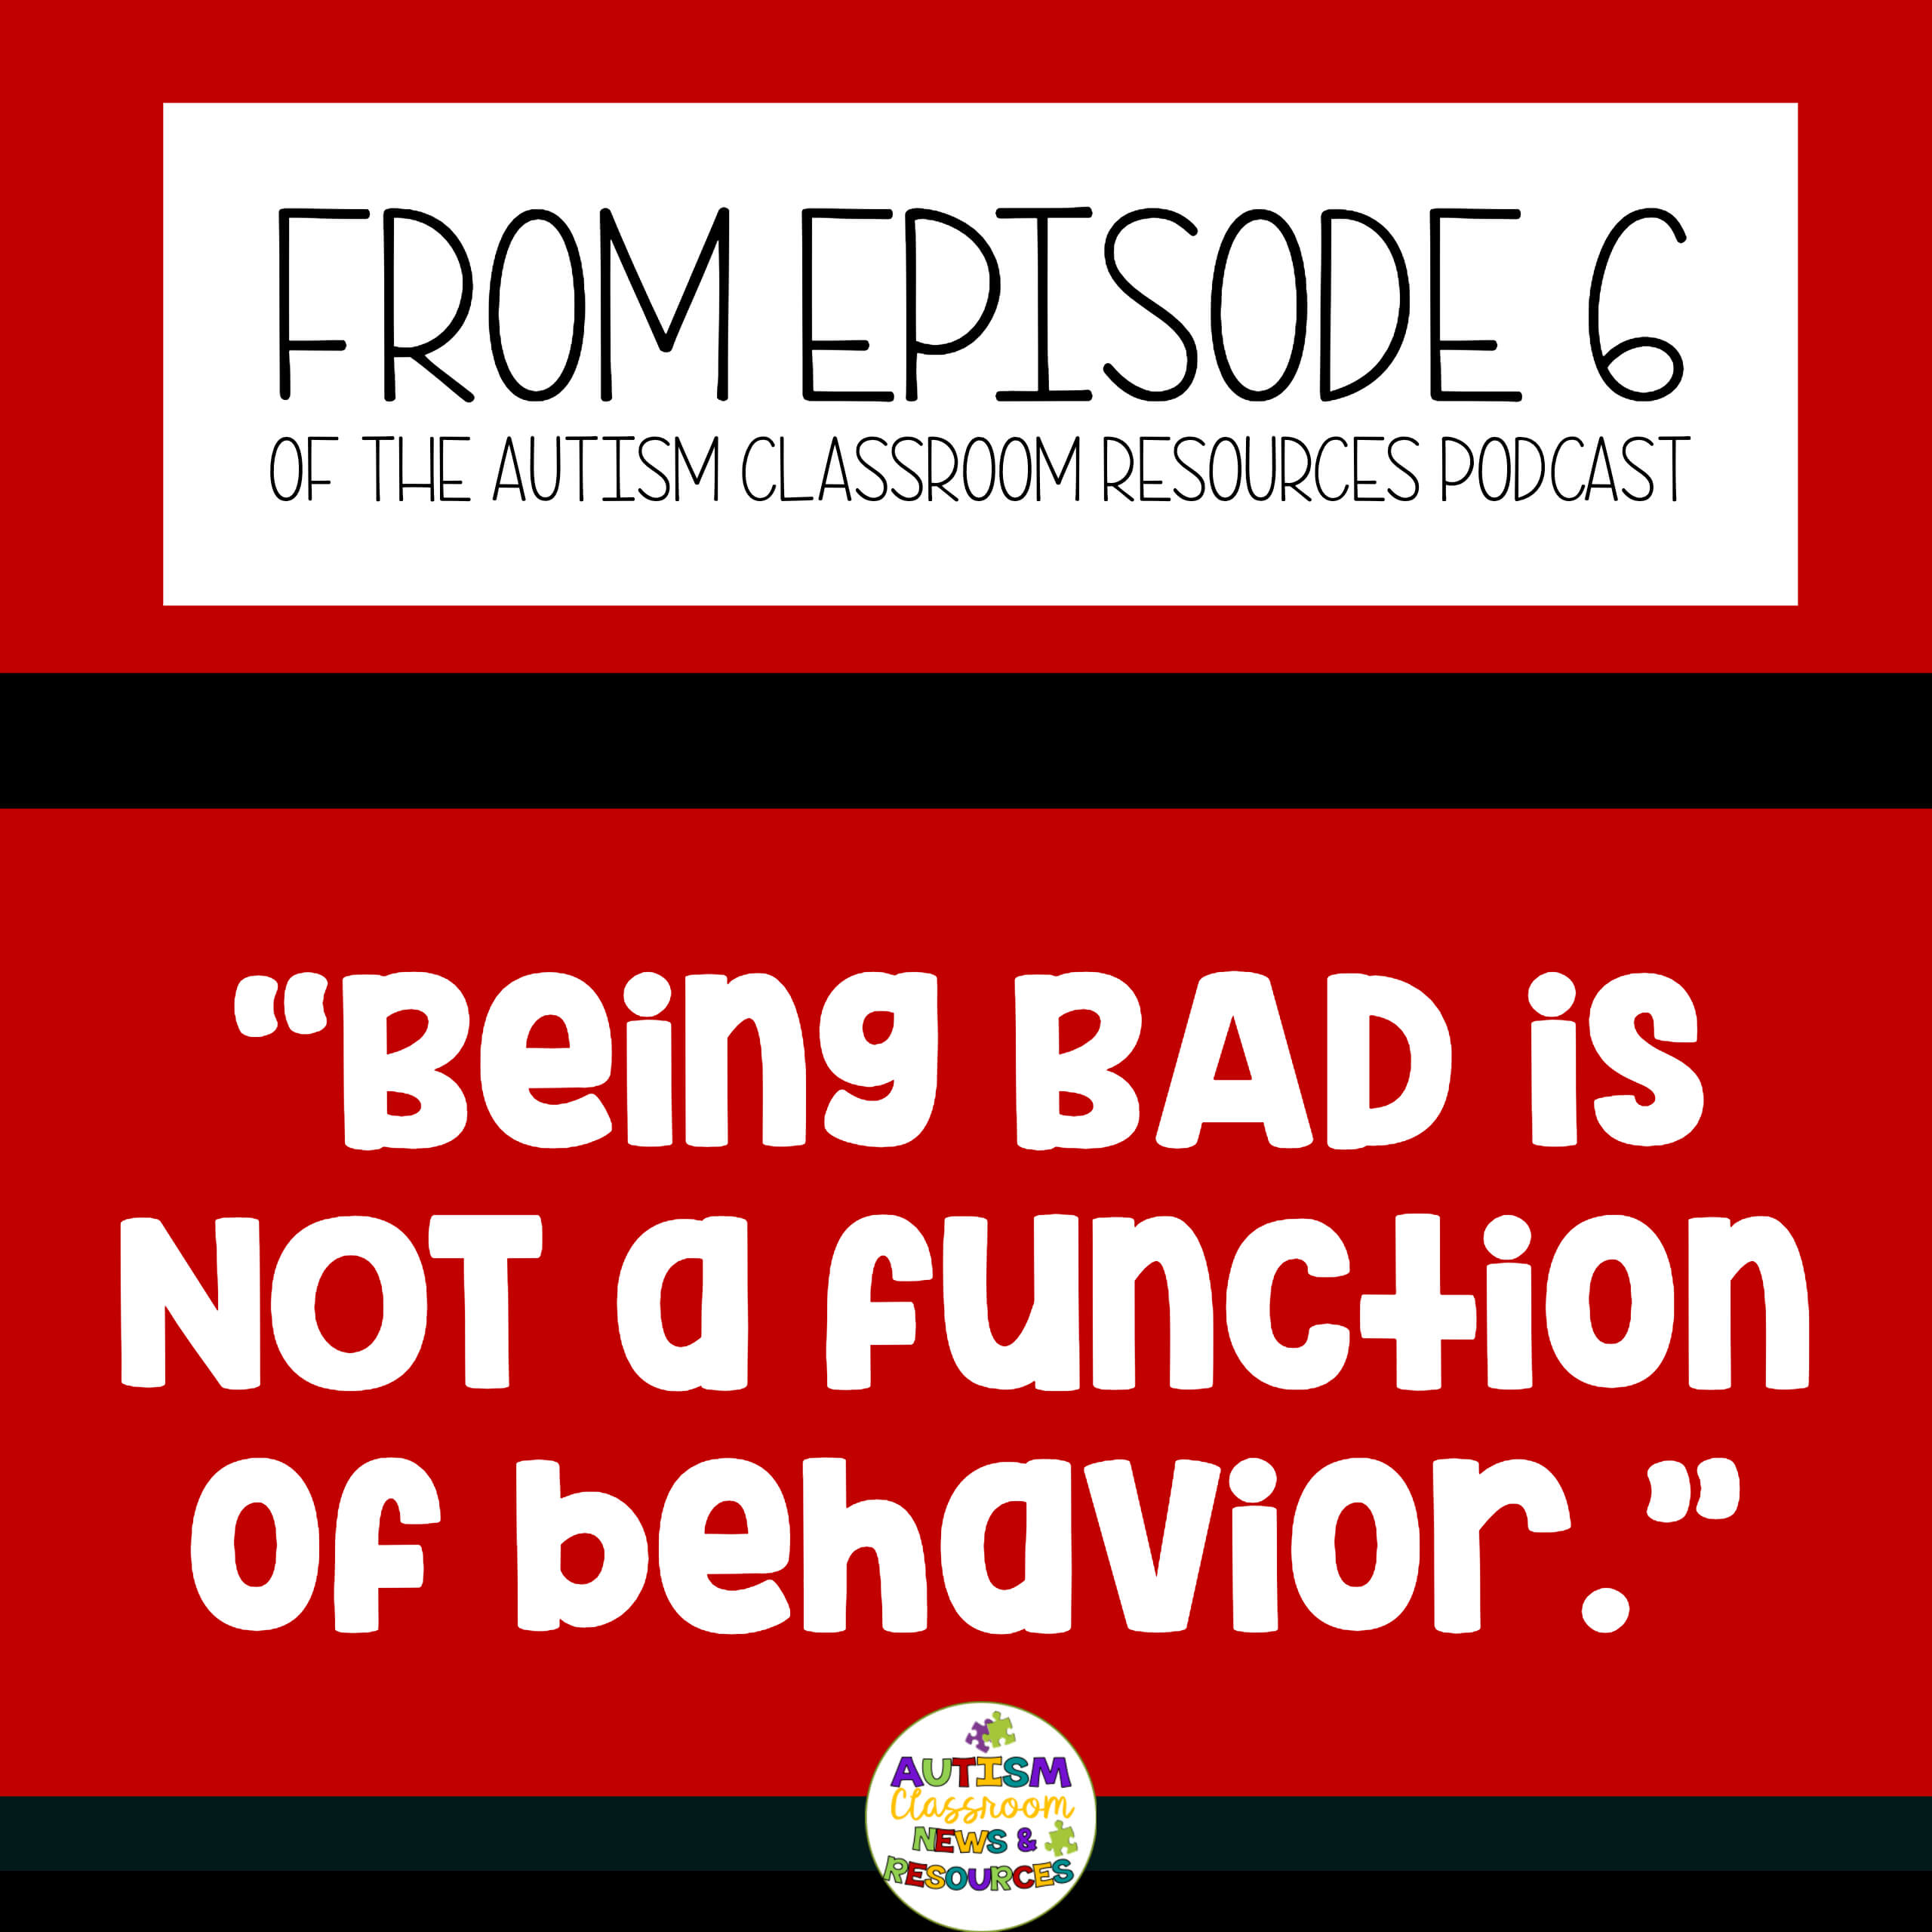 "From episode 6 of the Autism Classroom Resources Podcast. ""Being Bad is not a function of behavior."""